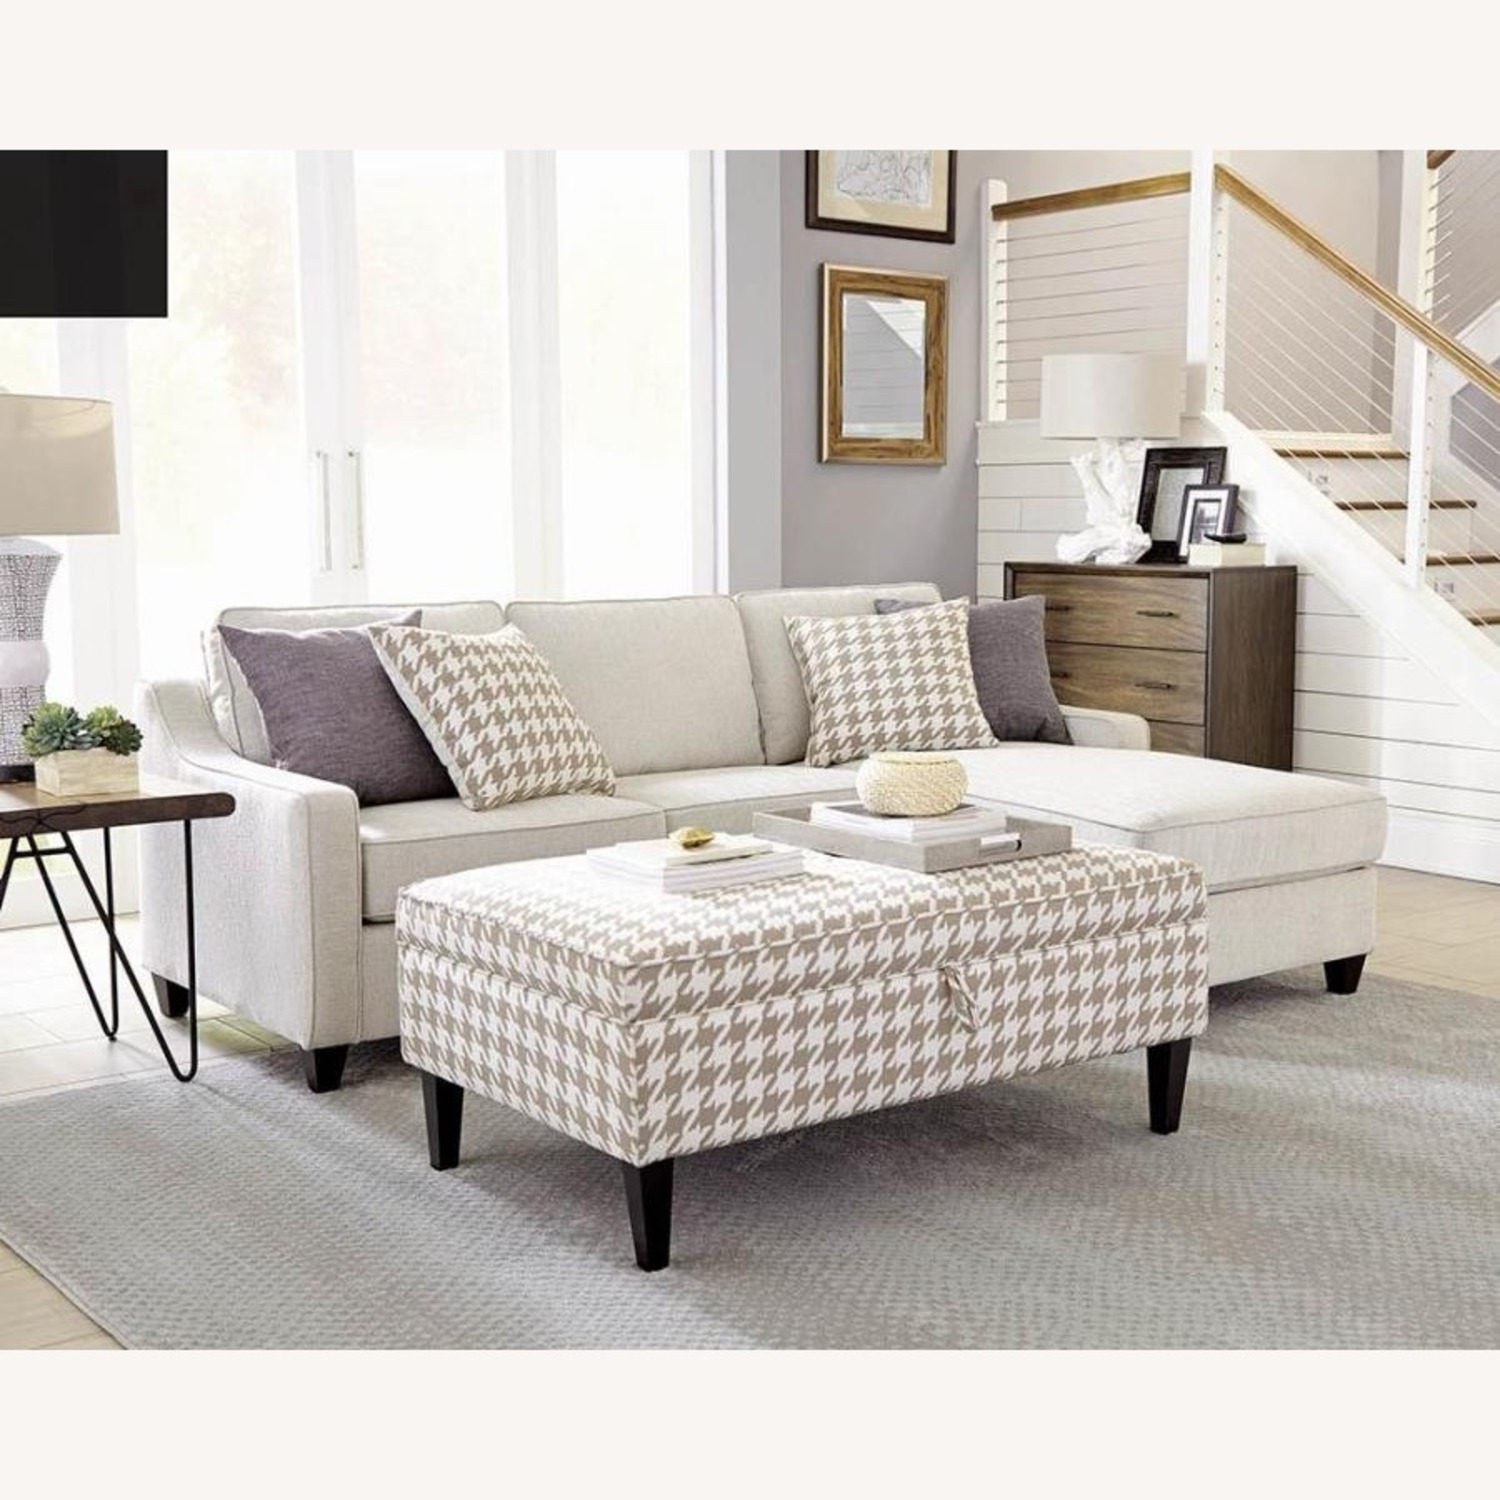 Sectional In Cream Chevron Dobby Upholstery - image-11